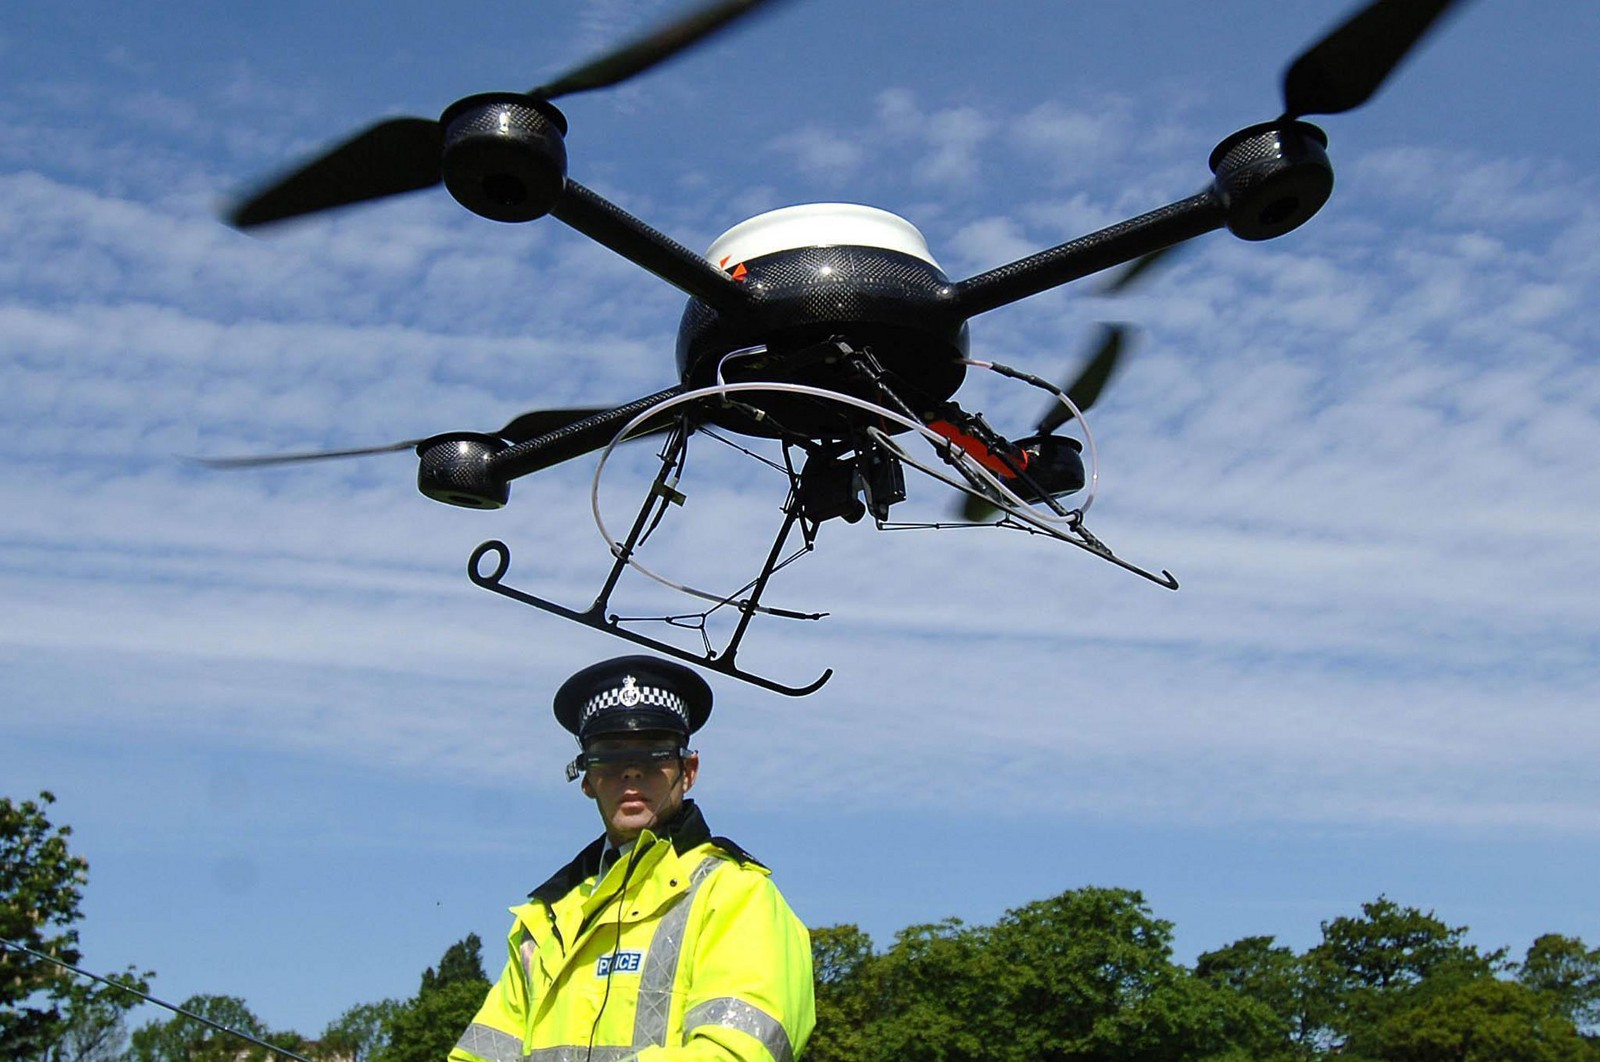 drones uses for business